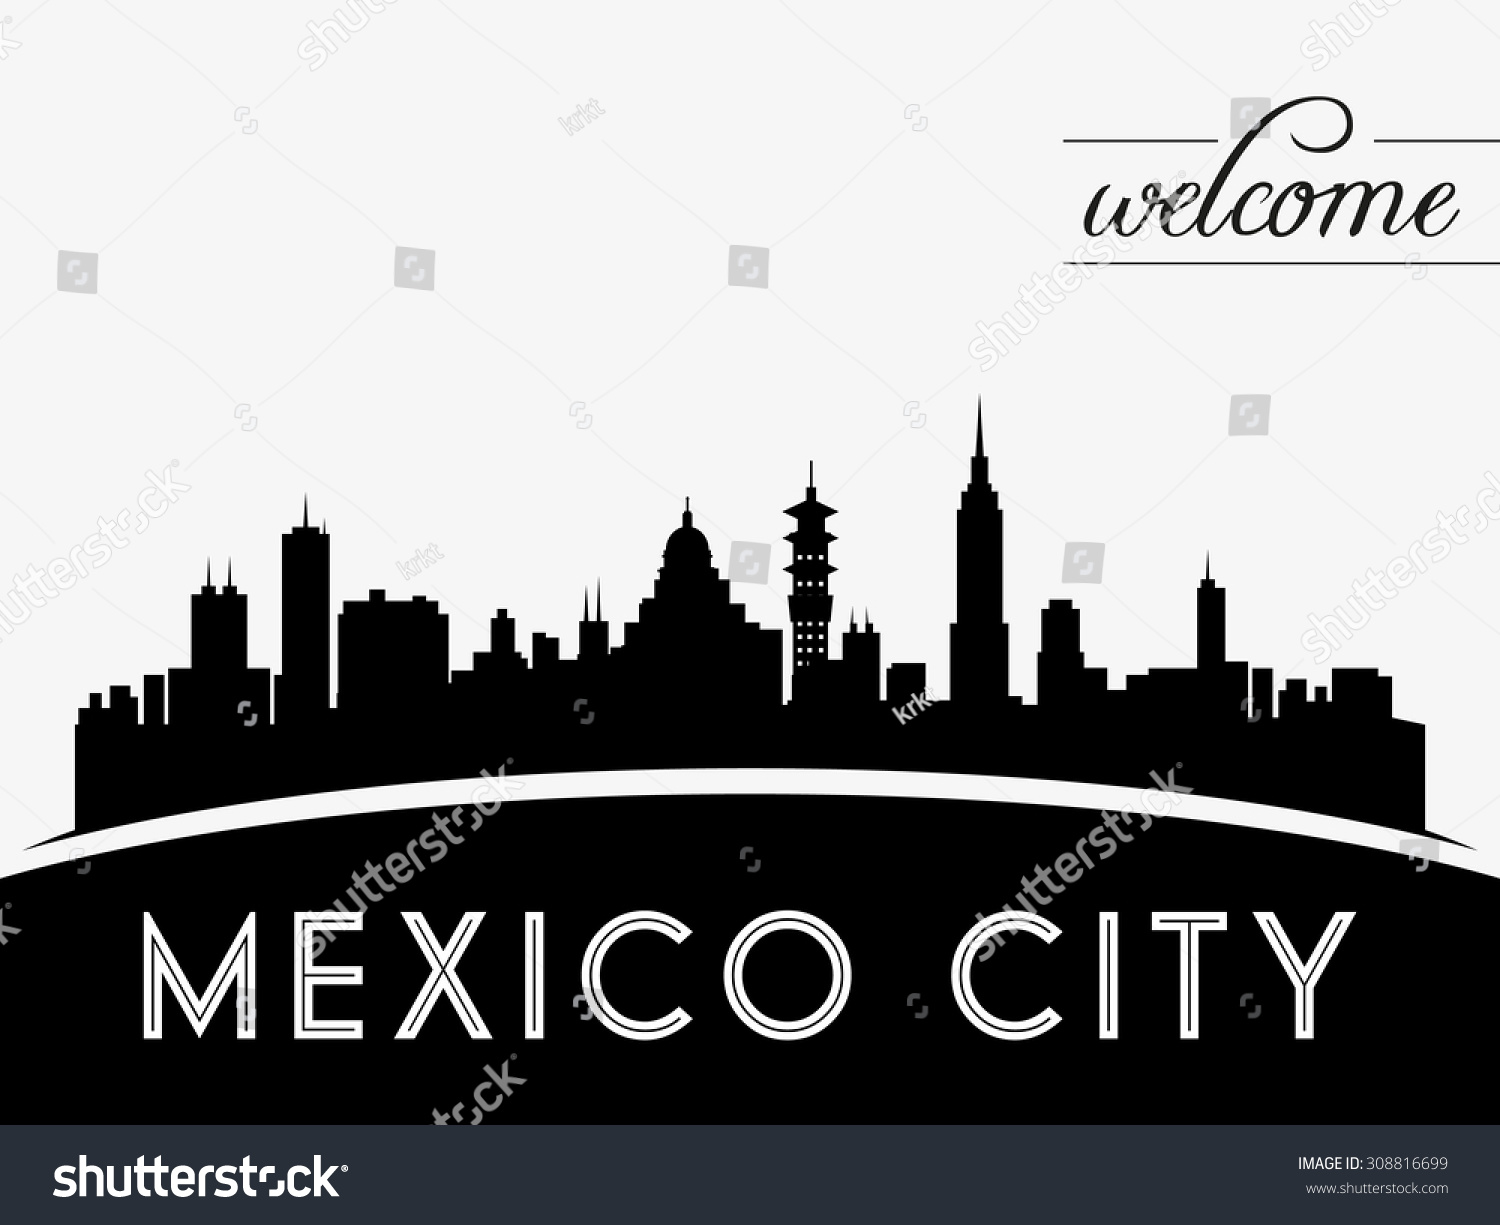 Mexico City Skyline Silhouette Black White Stock Vector